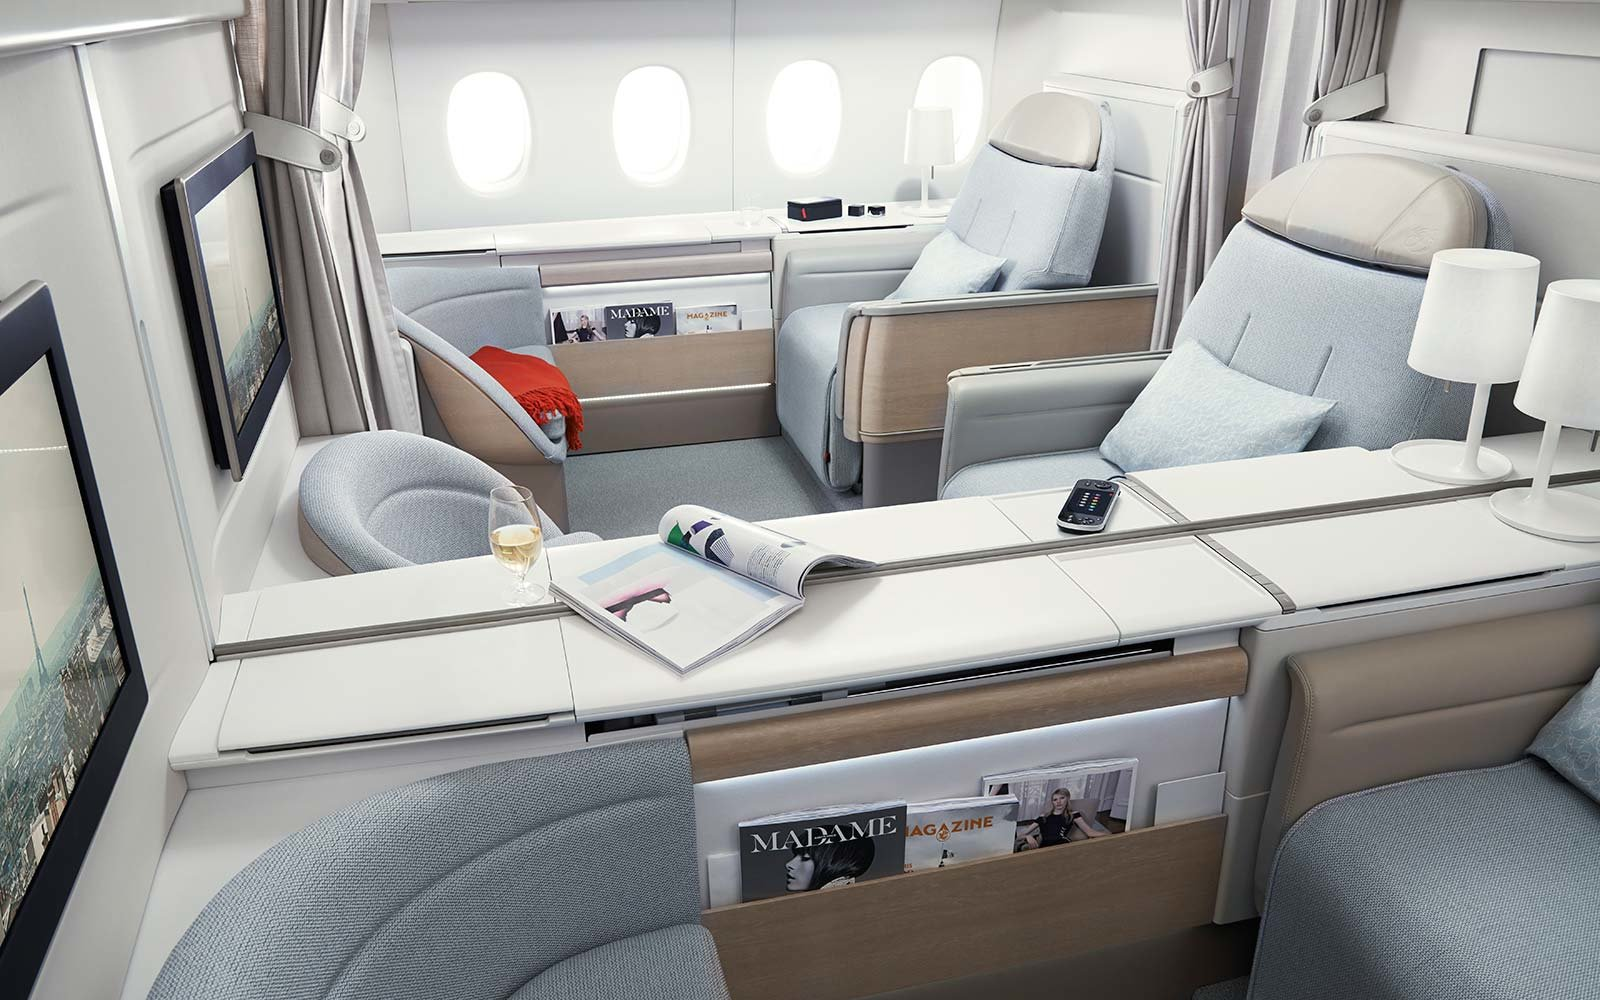 First Class Flights to London From the West Coast Are Super Cheap Right Now